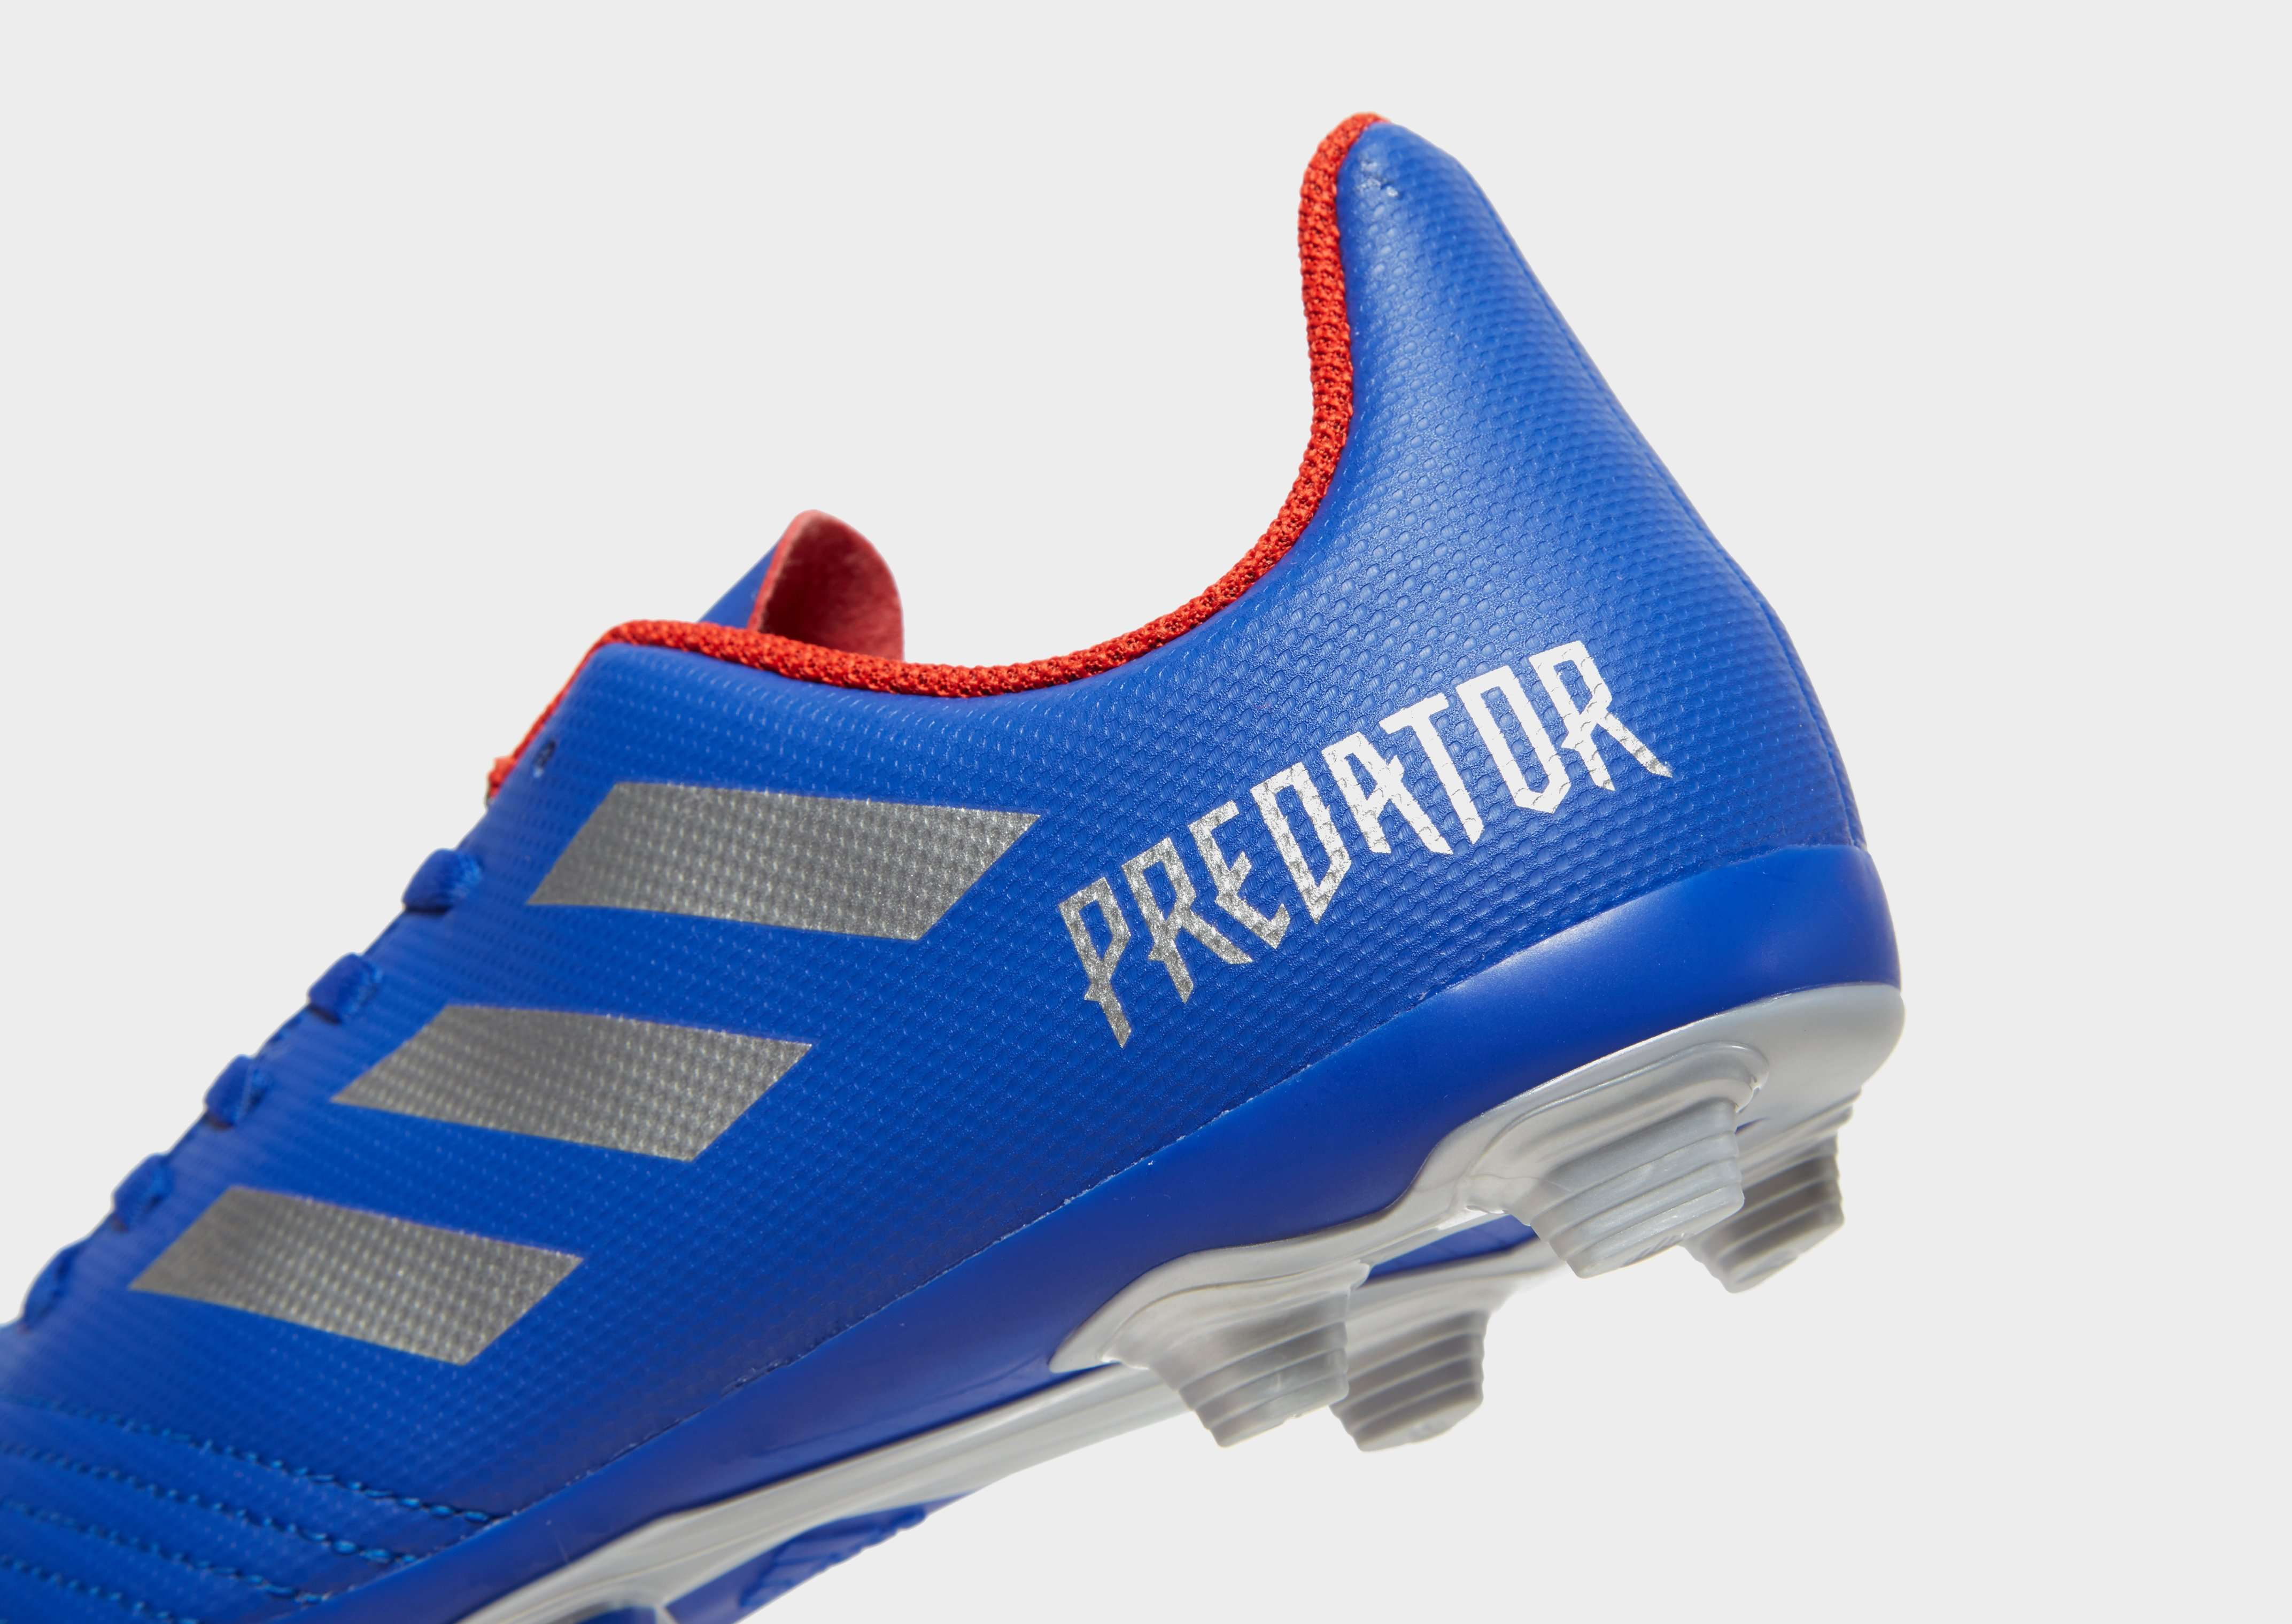 adidas Exhibit Predator 19.4 FG Junior